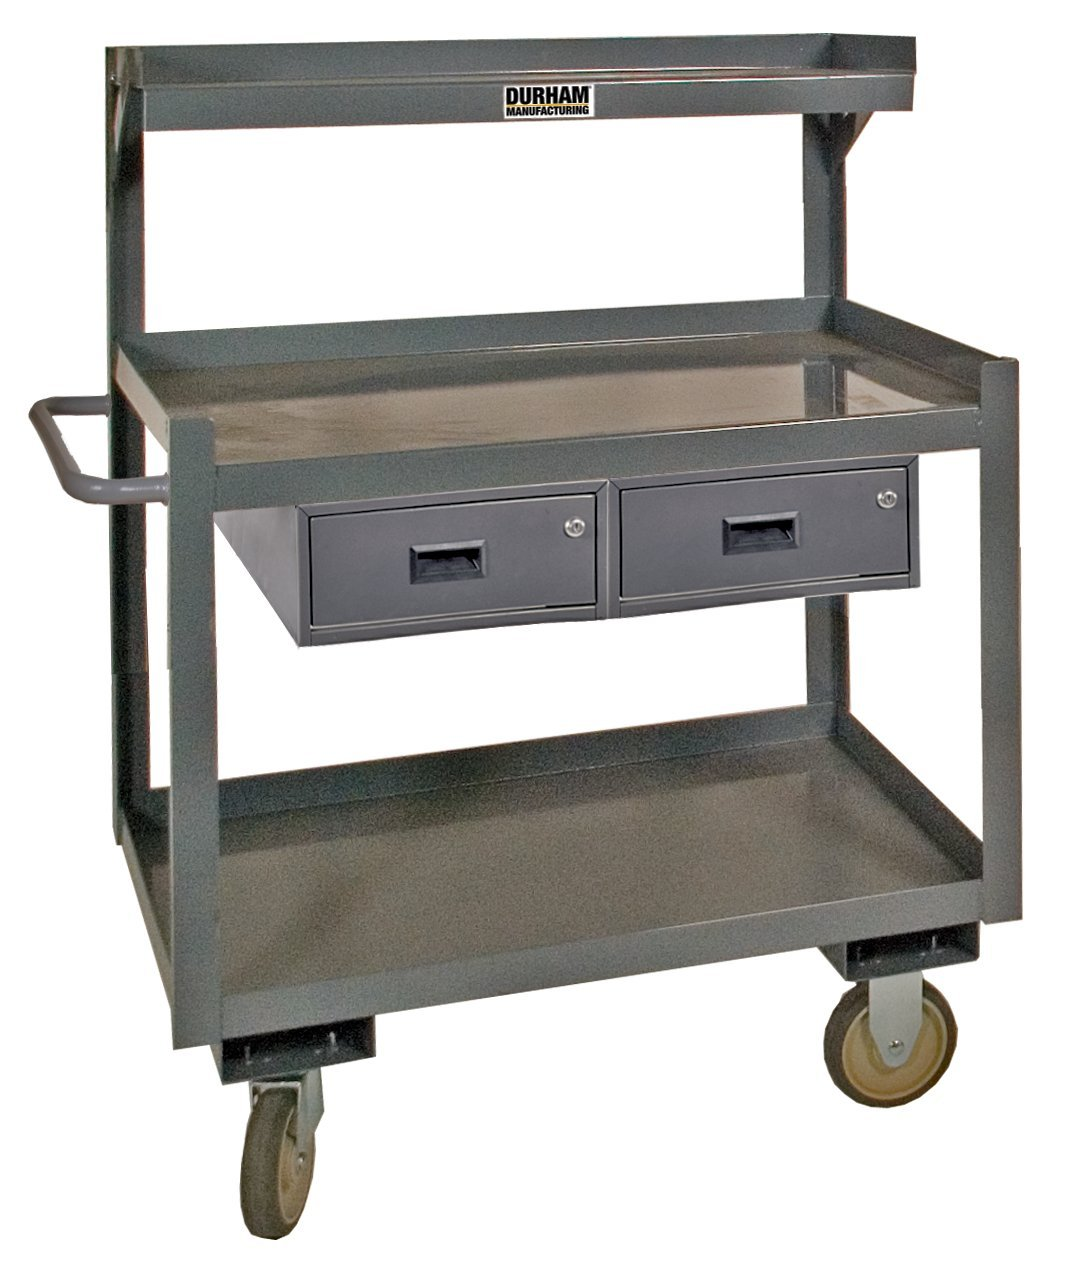 Durham 14 Gauge Steel Special Purpose Mobile Workstation with Drawer, PSD-2436-3-2D-95, 1200 lbs Capacity, 24